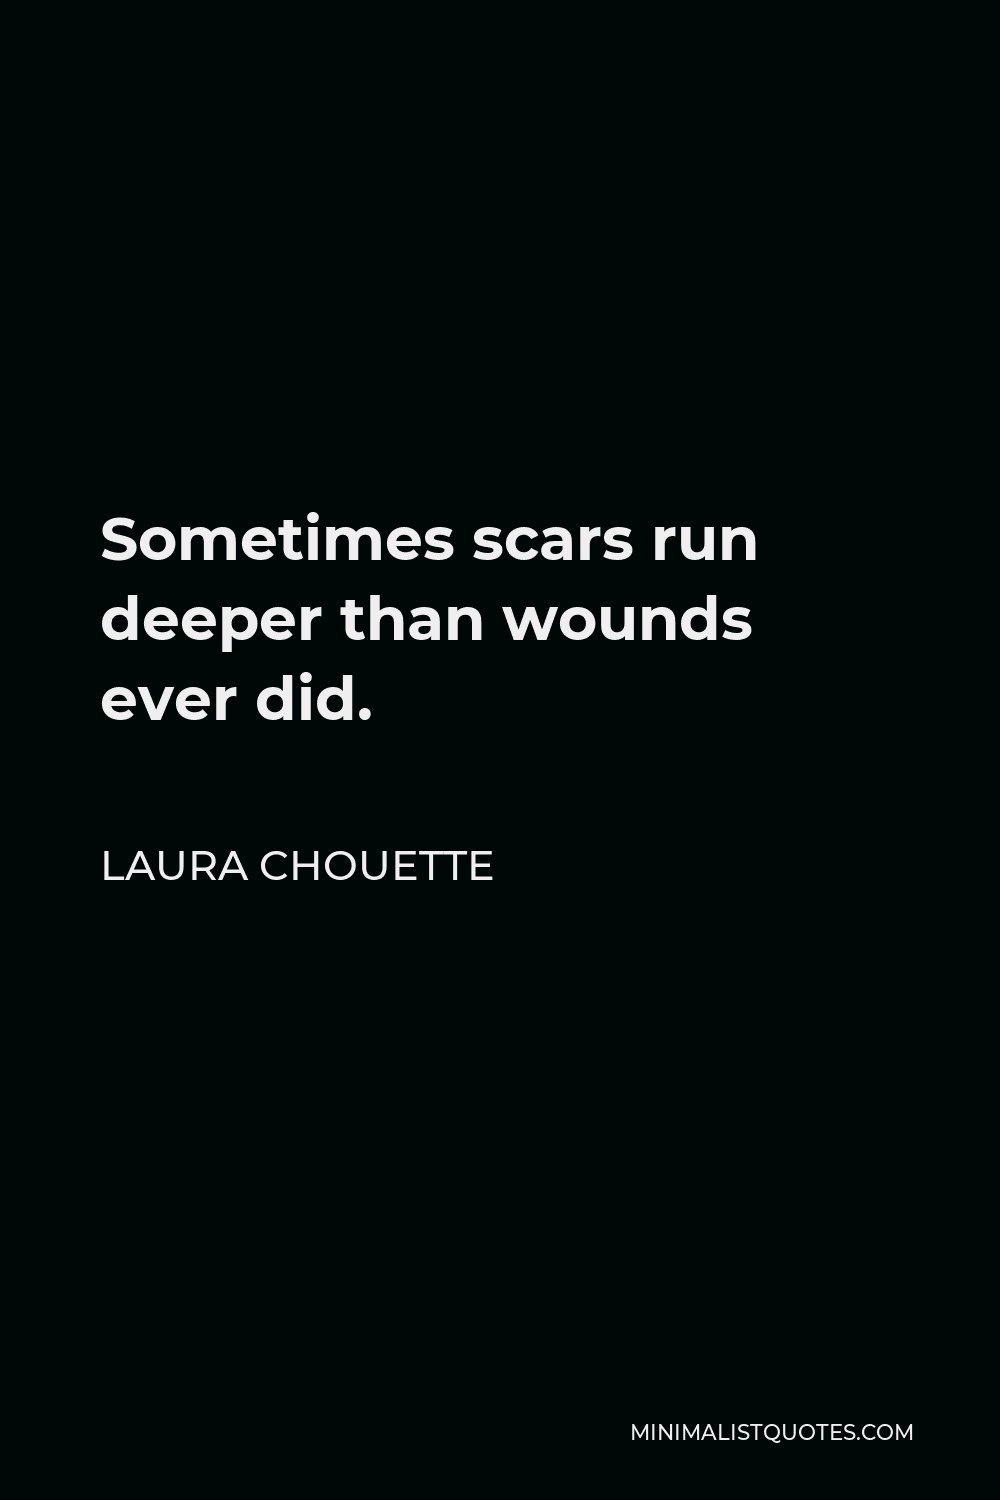 Laura Chouette Quote - Sometimes scars run deeper than wounds ever did.